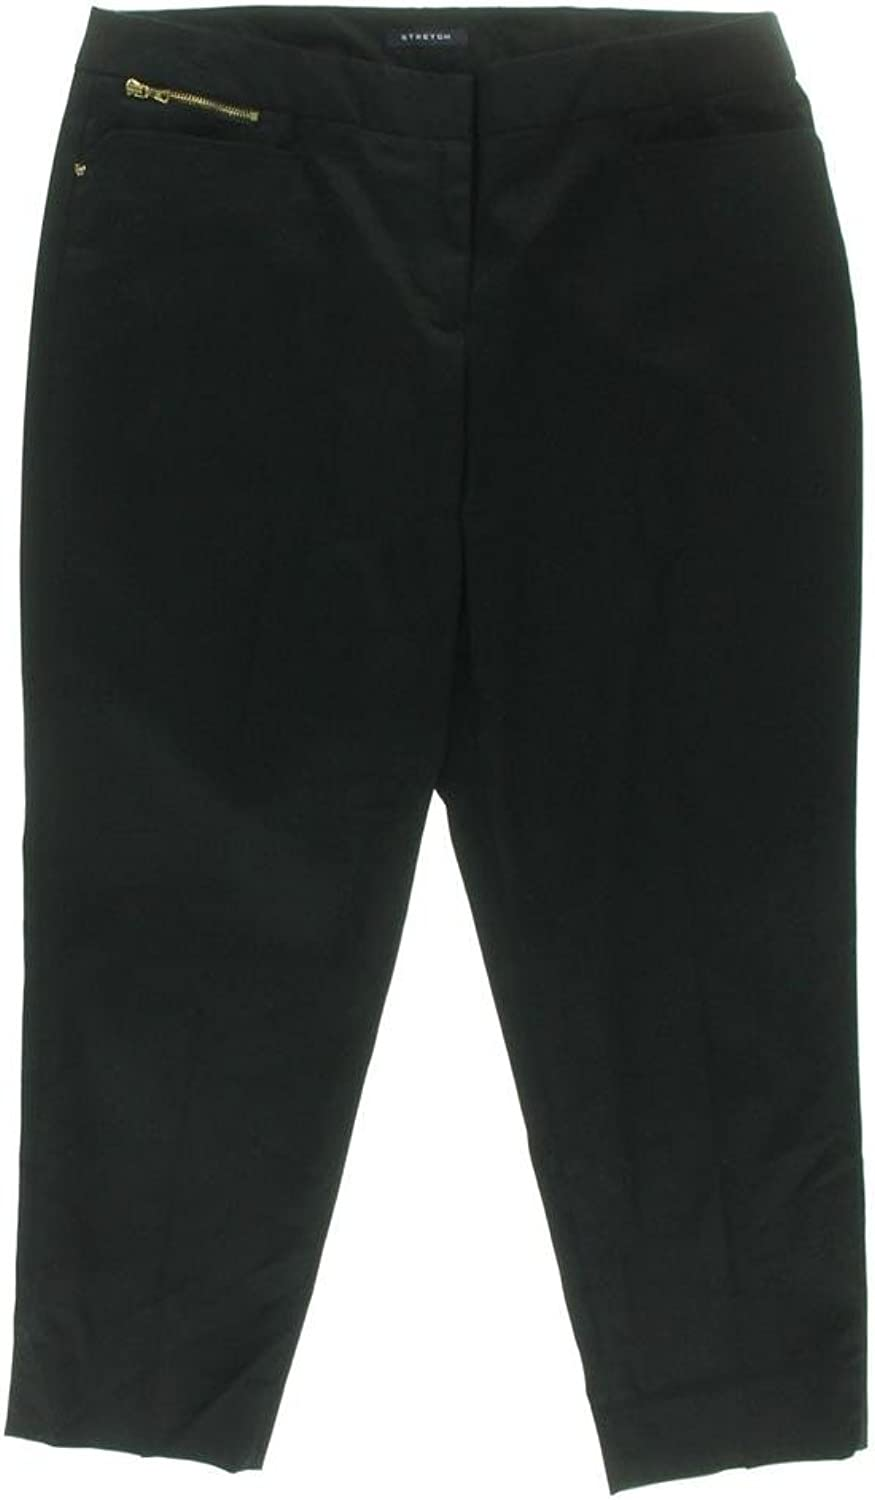 Jones New York Women's Stretch Ankle Pants, Black, 4P